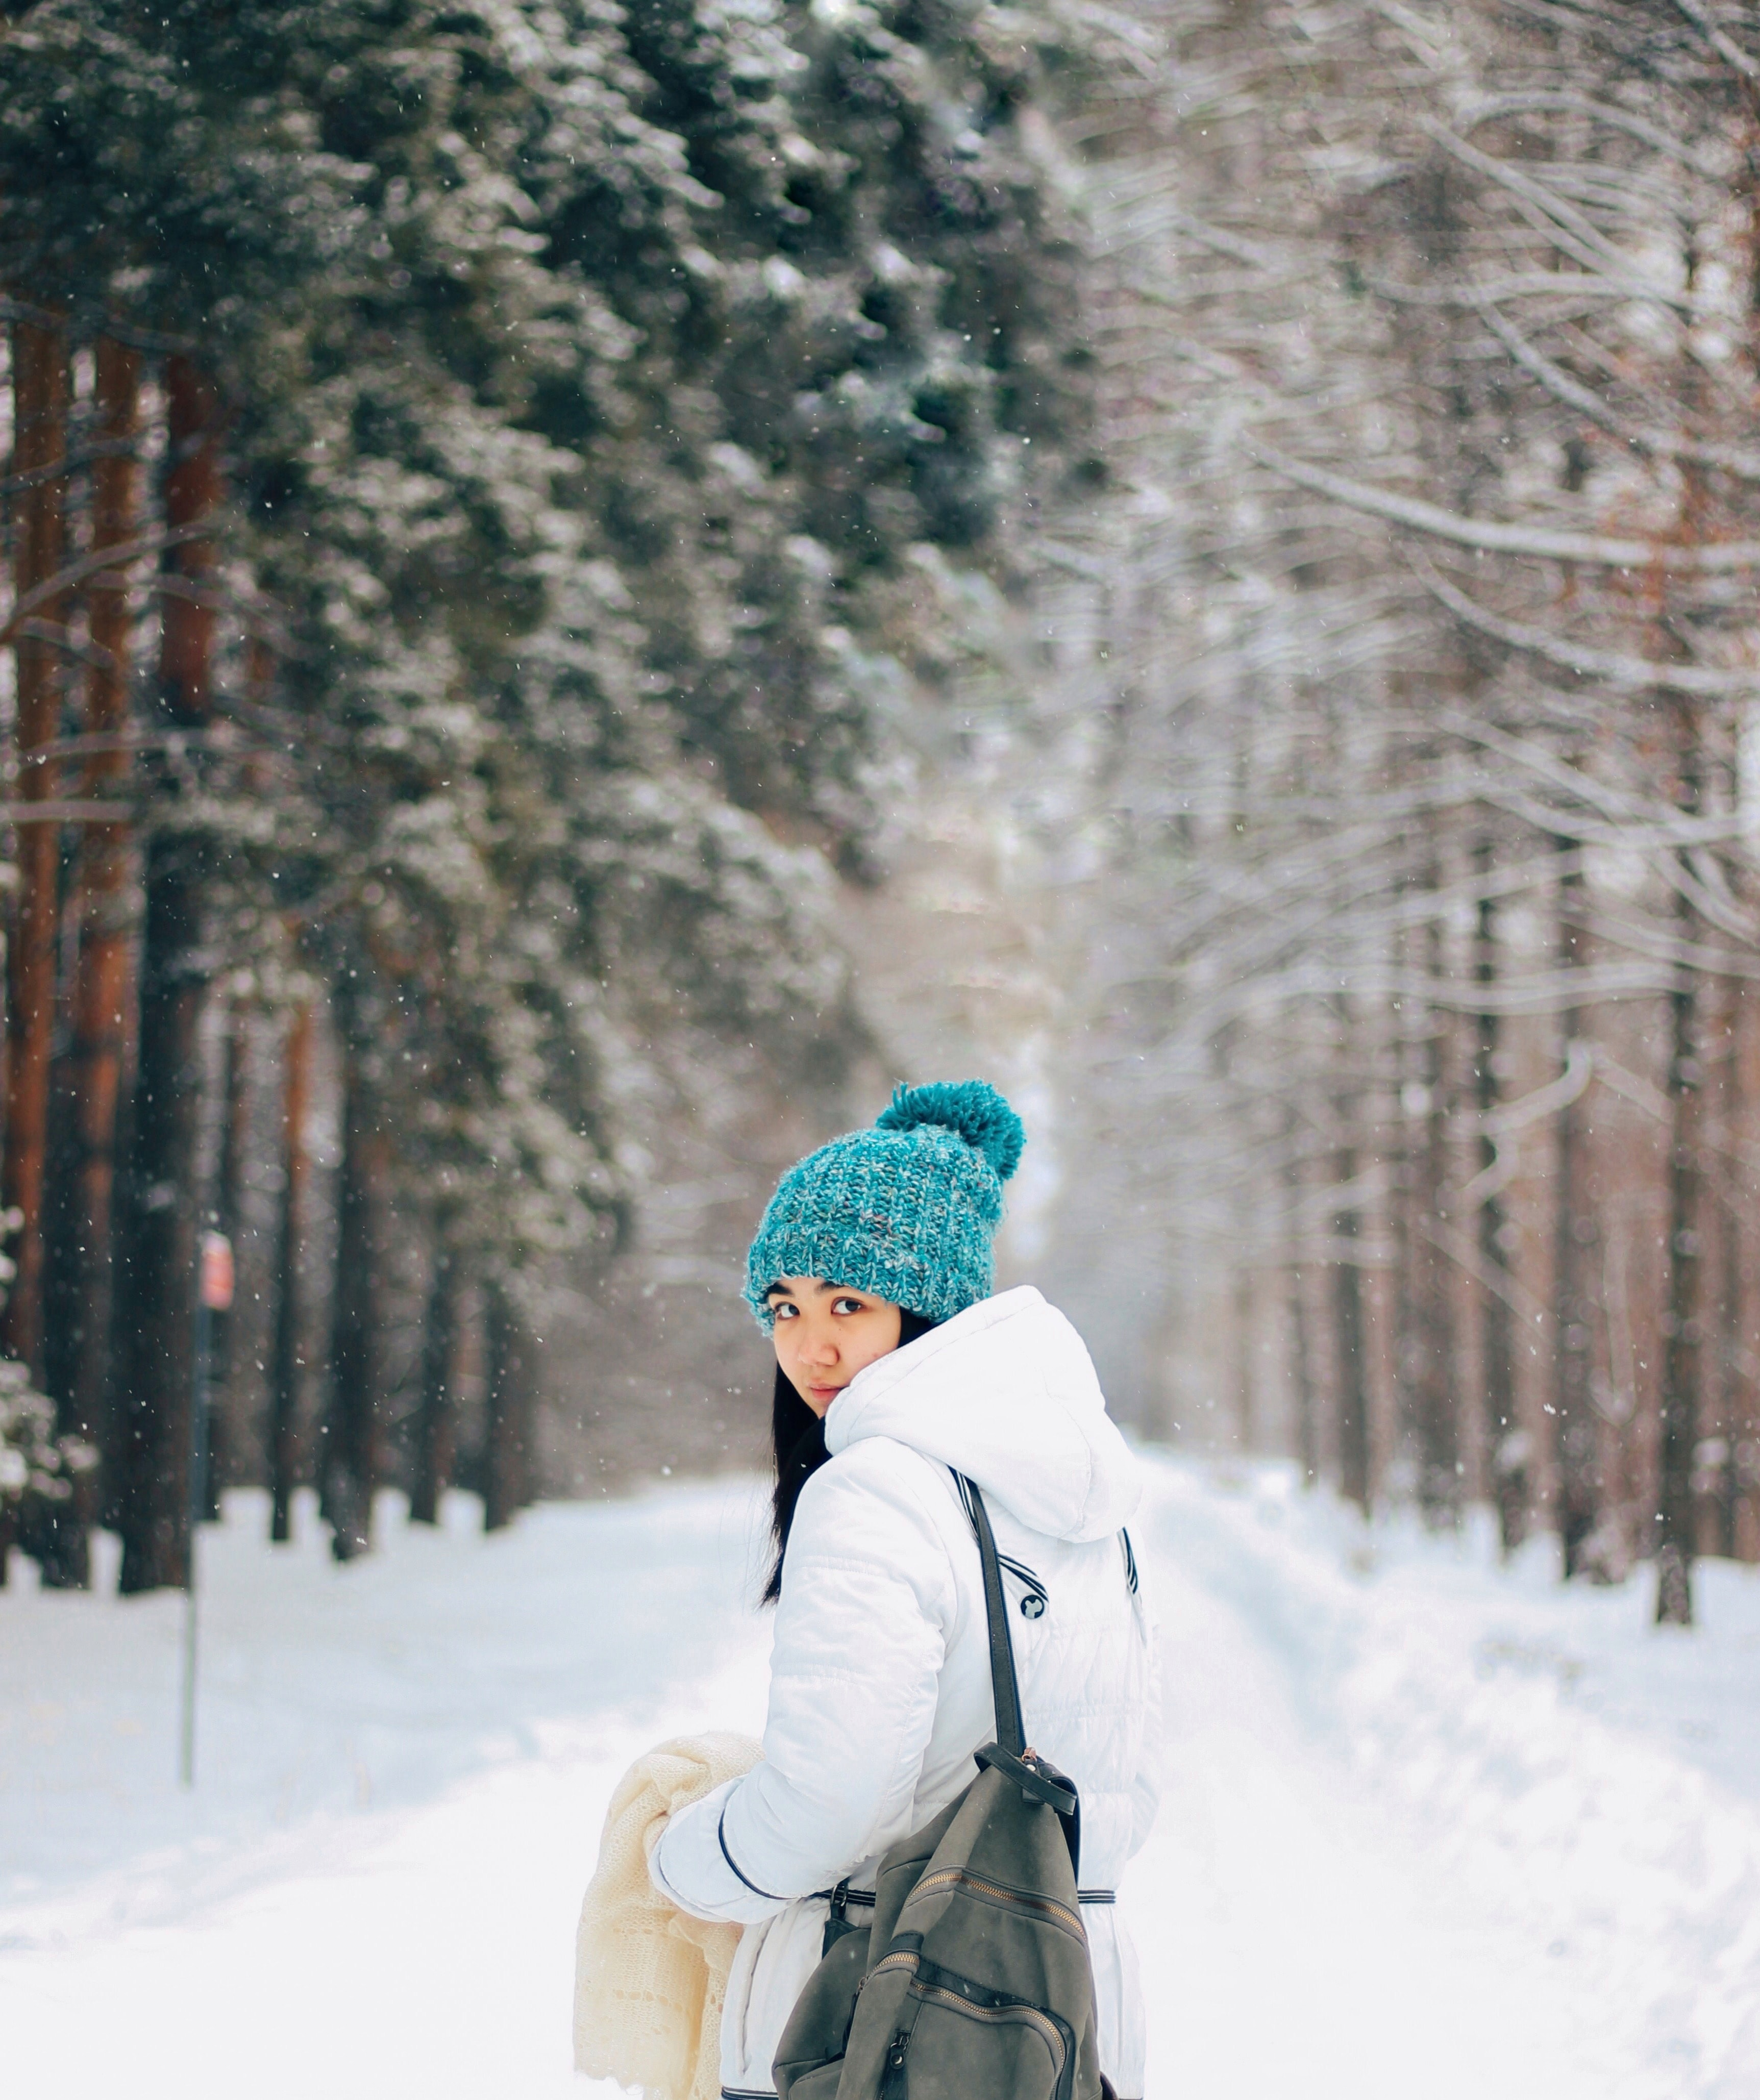 woman wearing white coat standing near snow-capped pathway near trees